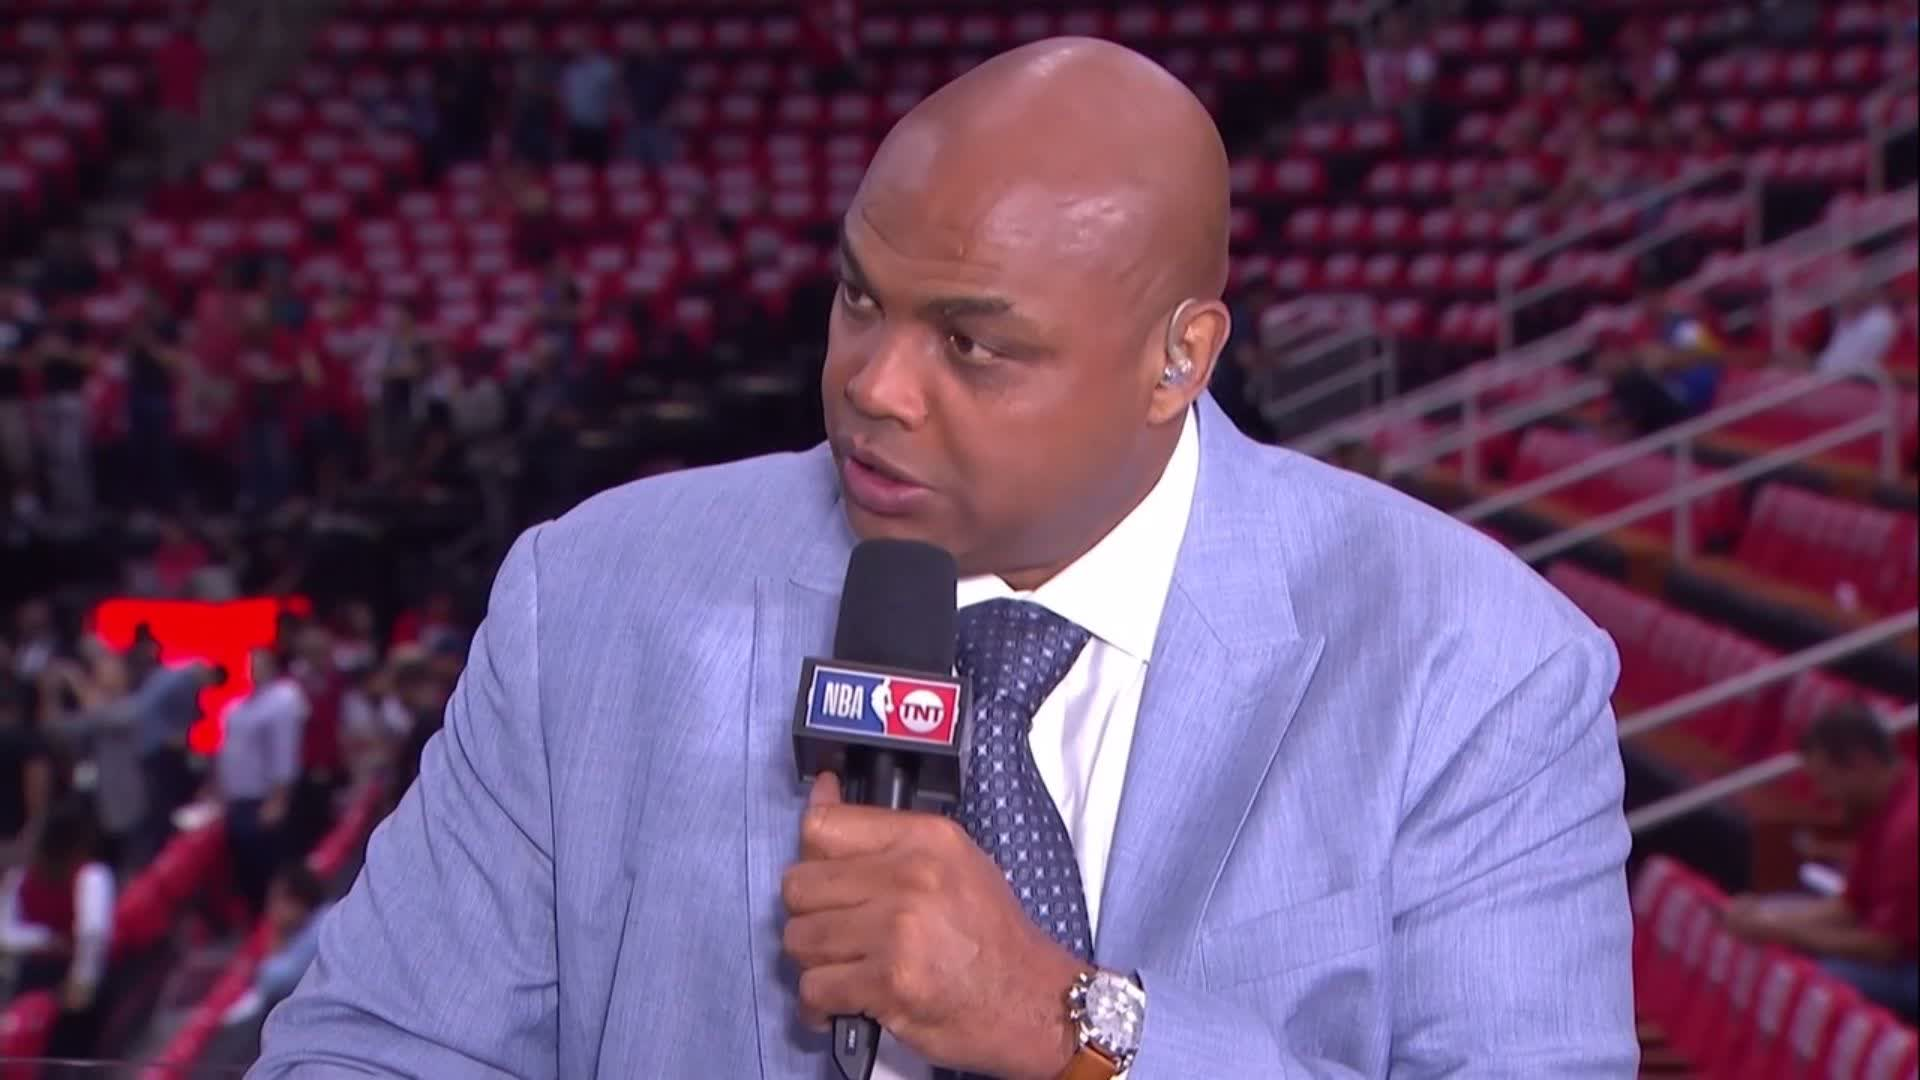 'This is a must win for the Rockets from a psychological standpoint.' - Chuck on Game 1 https://t.co/VlpIXvzF8b